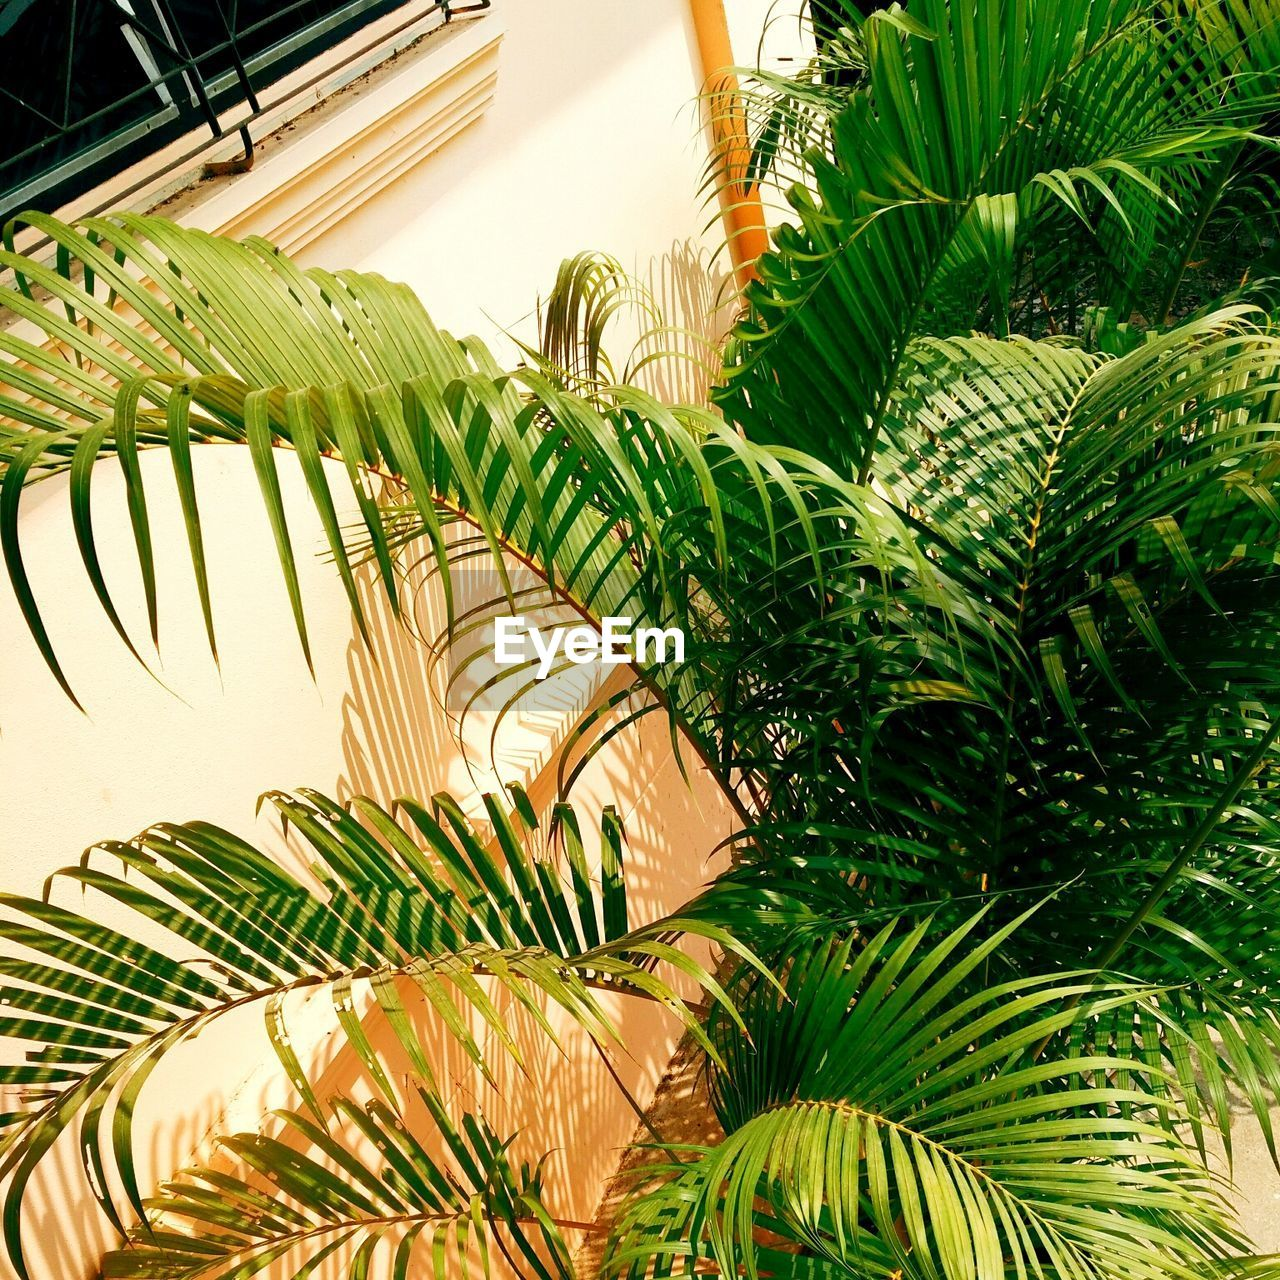 leaf, palm tree, growth, green color, plant, day, no people, sunlight, frond, outdoors, nature, close-up, freshness